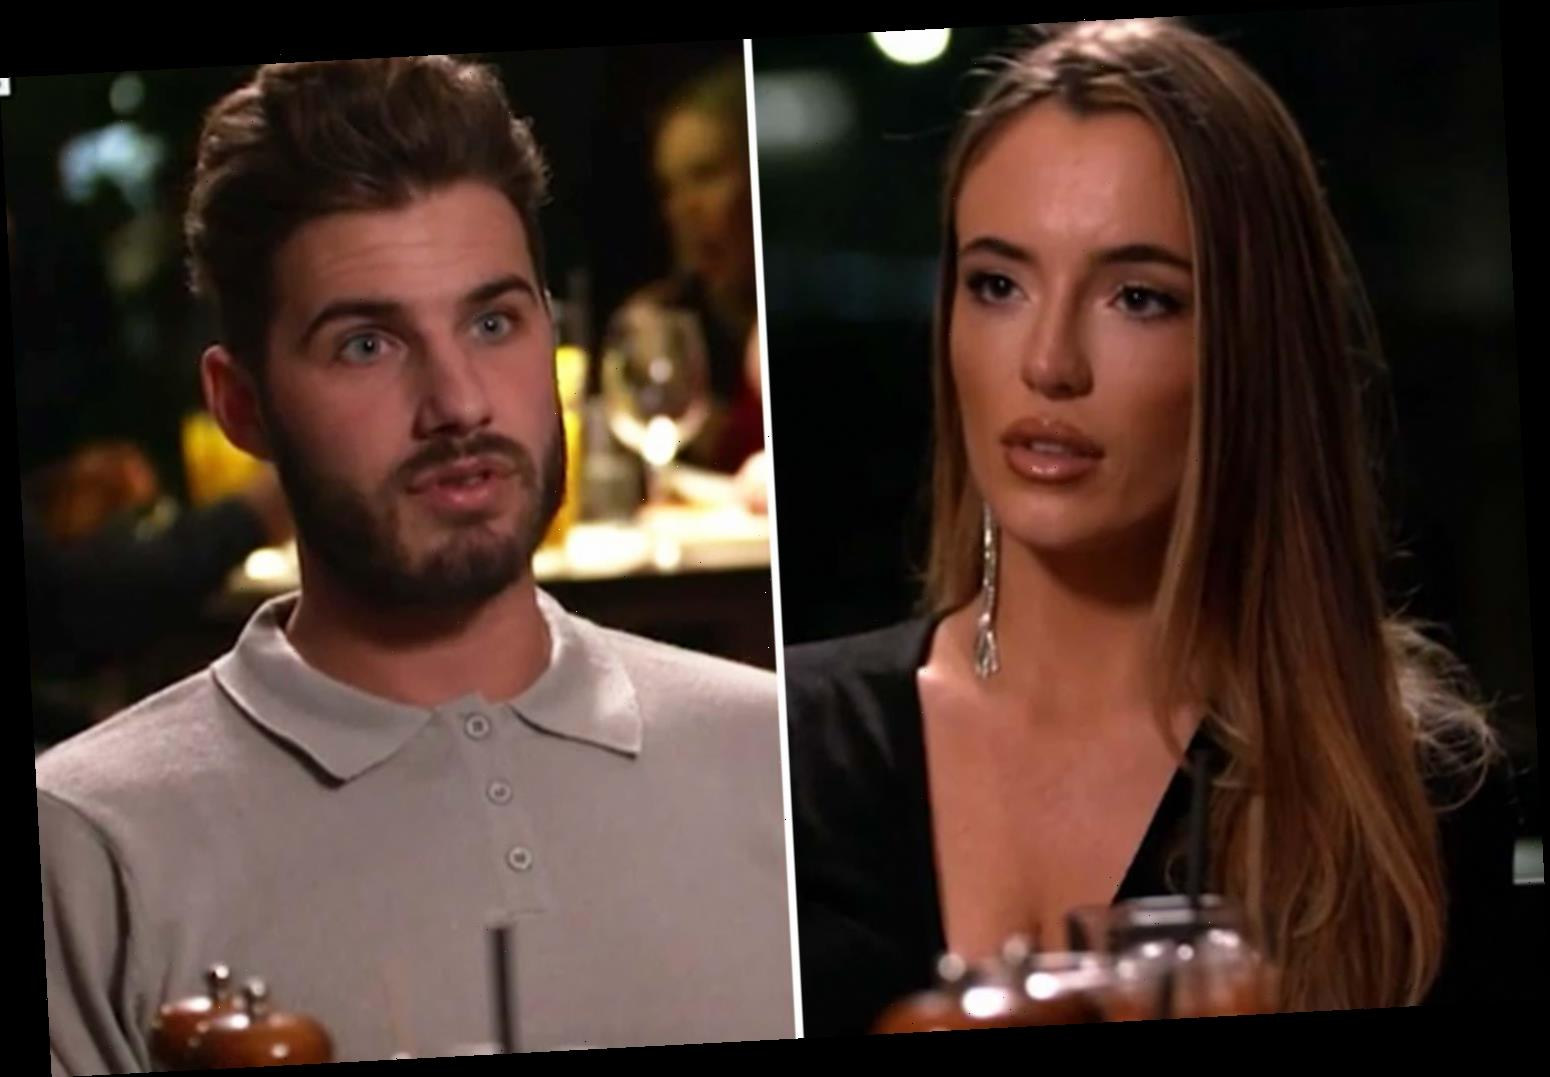 Josh Ritchie mortified as he's caught lying about going to a strip club after date on Celebs Go Dating – The Sun